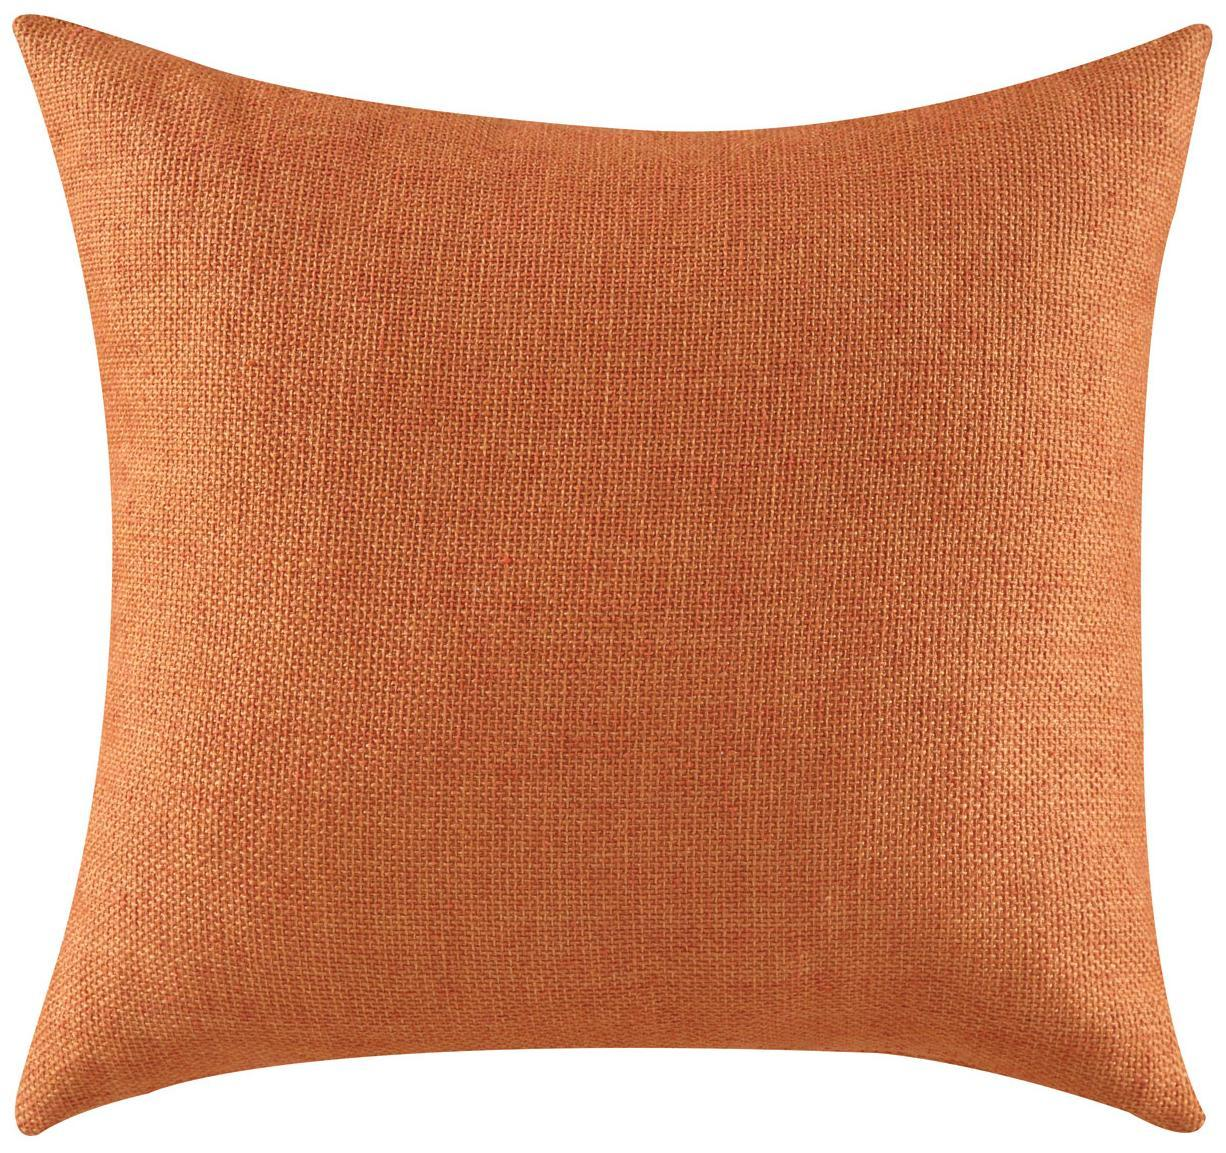 Throw Pillows Textured Orange Accent Pillow from Coaster Beverly Hills Furniture in Jamaica ...